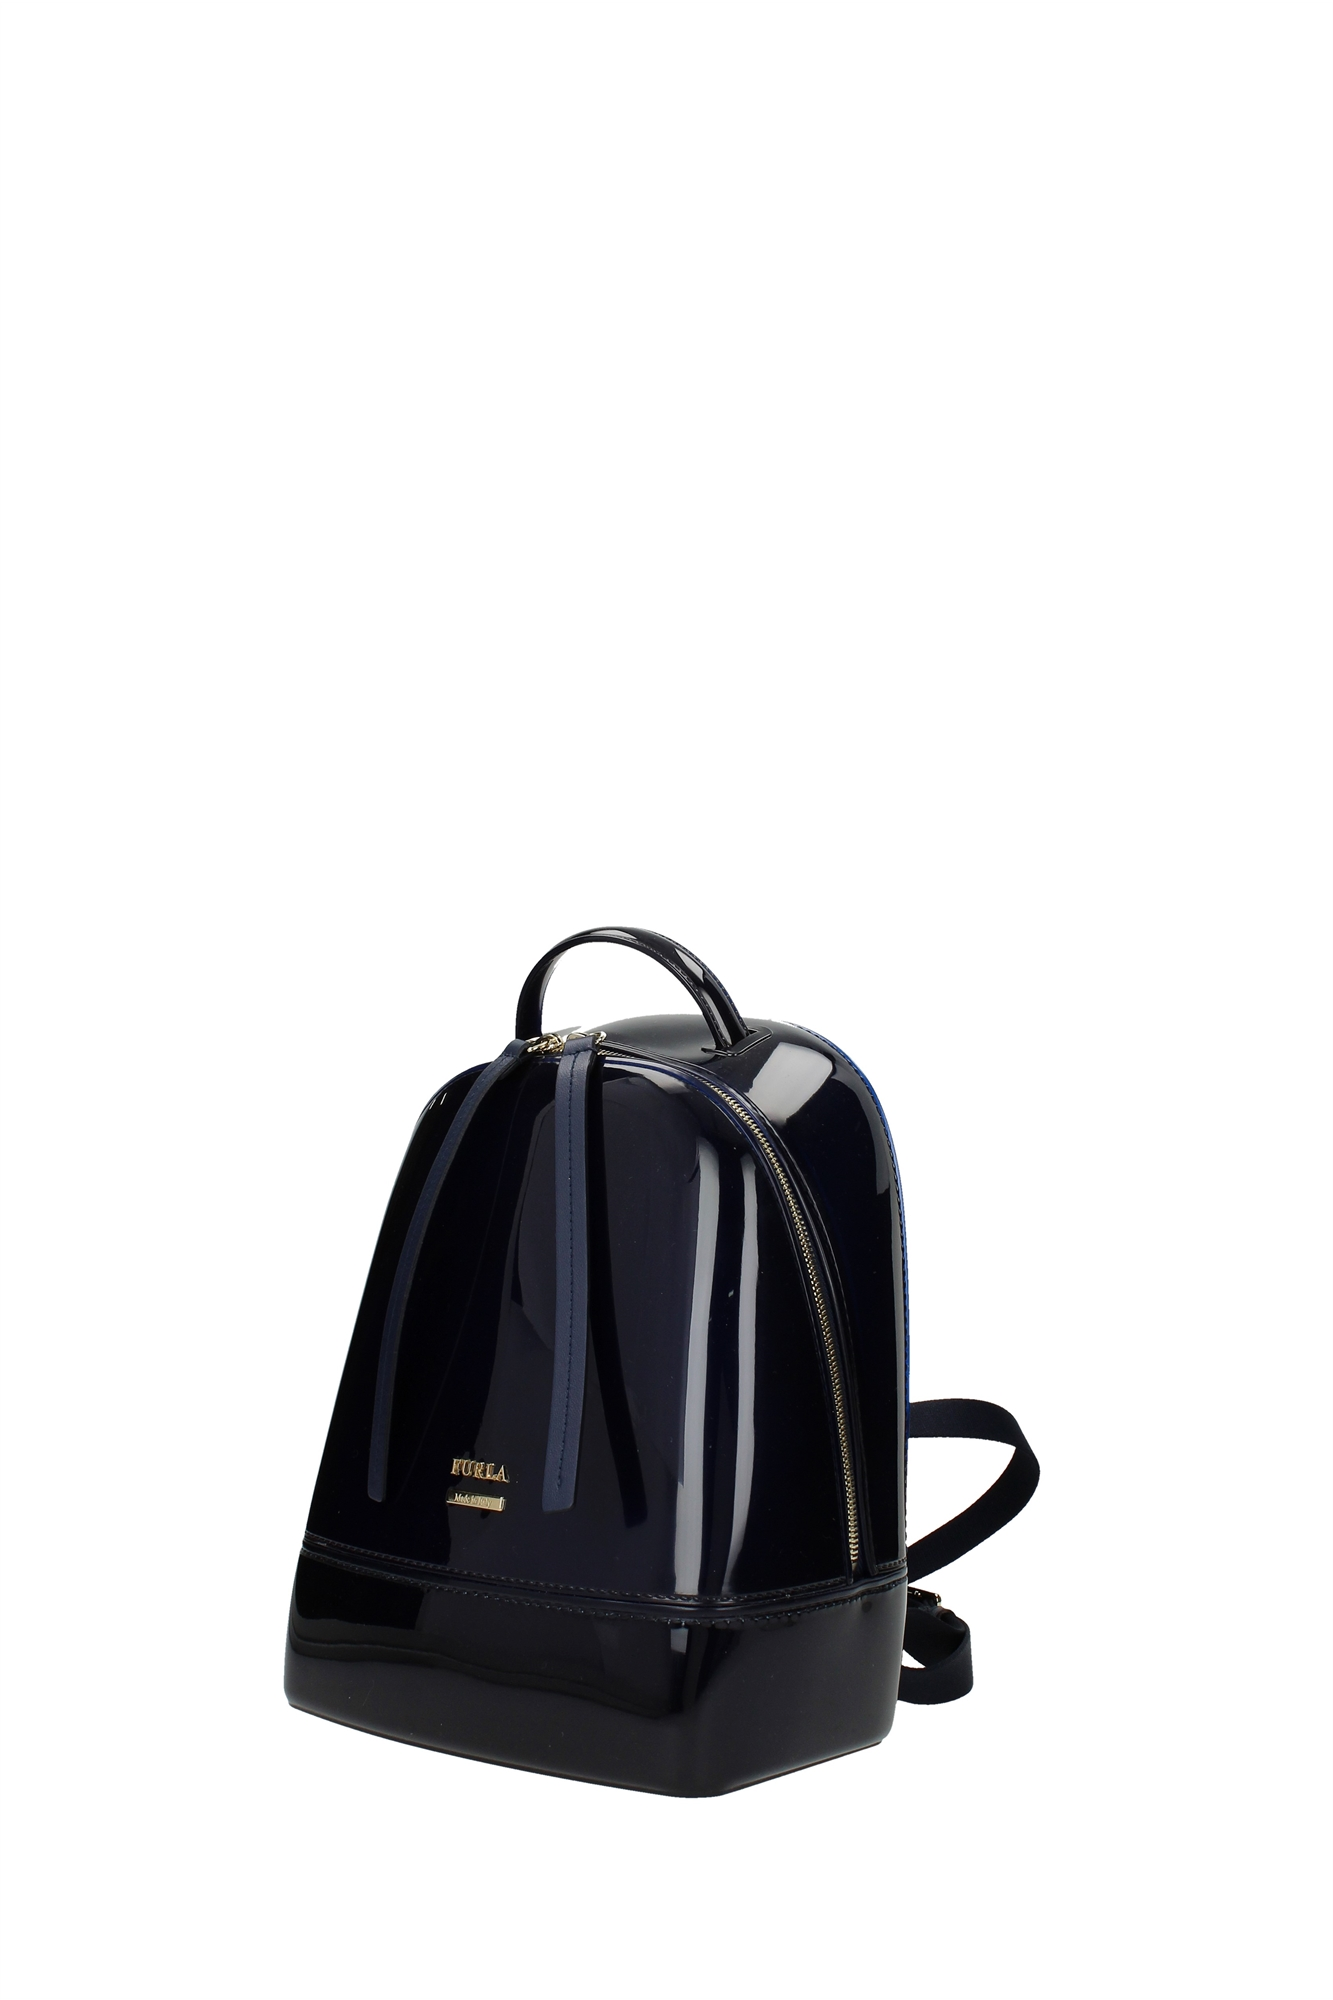 tasche rucksack furla damen pvc blau 852043bbjw2pl0navy ebay. Black Bedroom Furniture Sets. Home Design Ideas